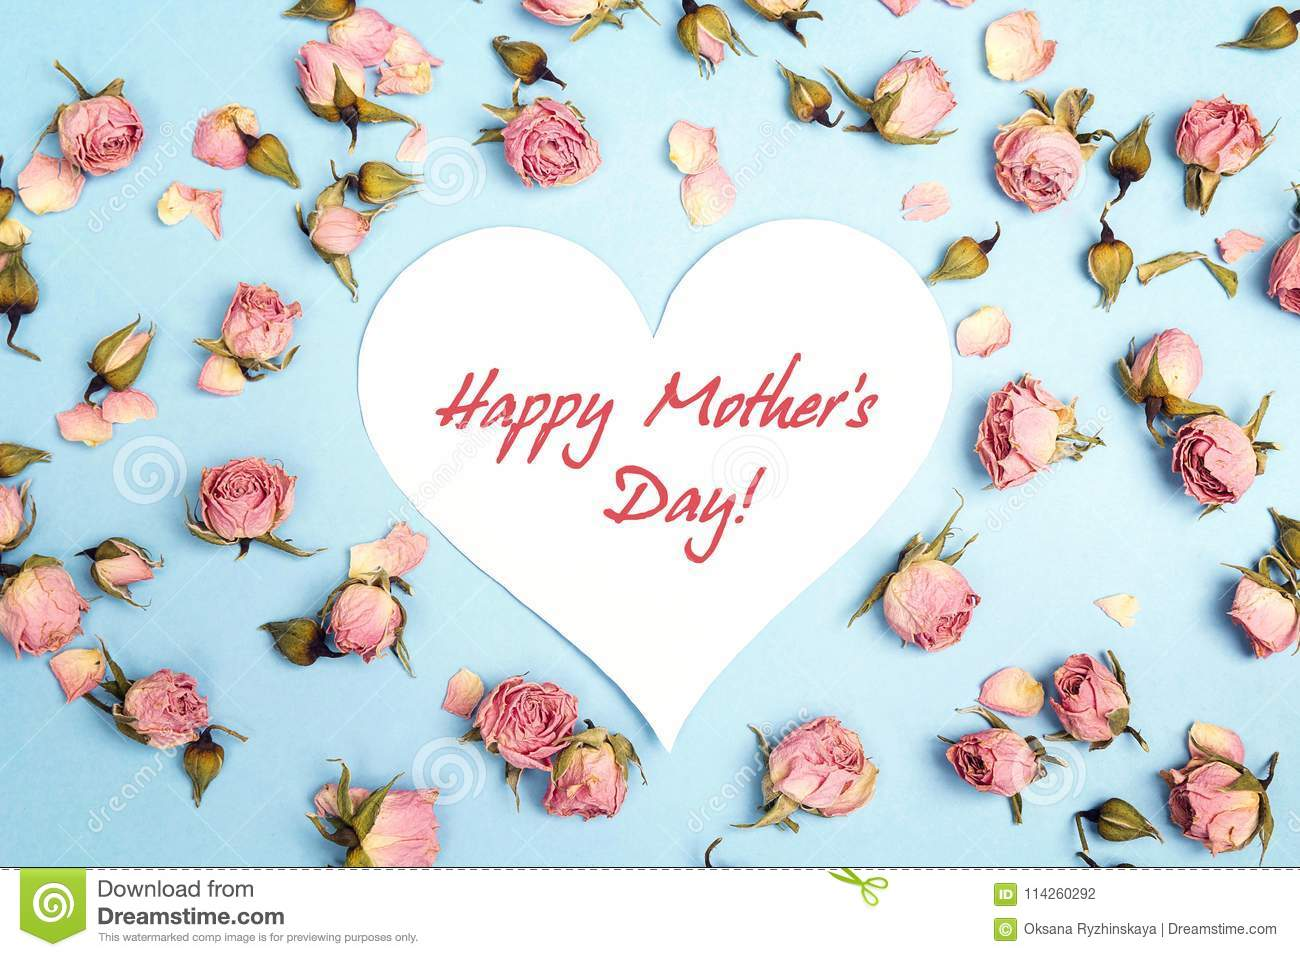 Mothers Day greeting message with small pink roses on blue background.